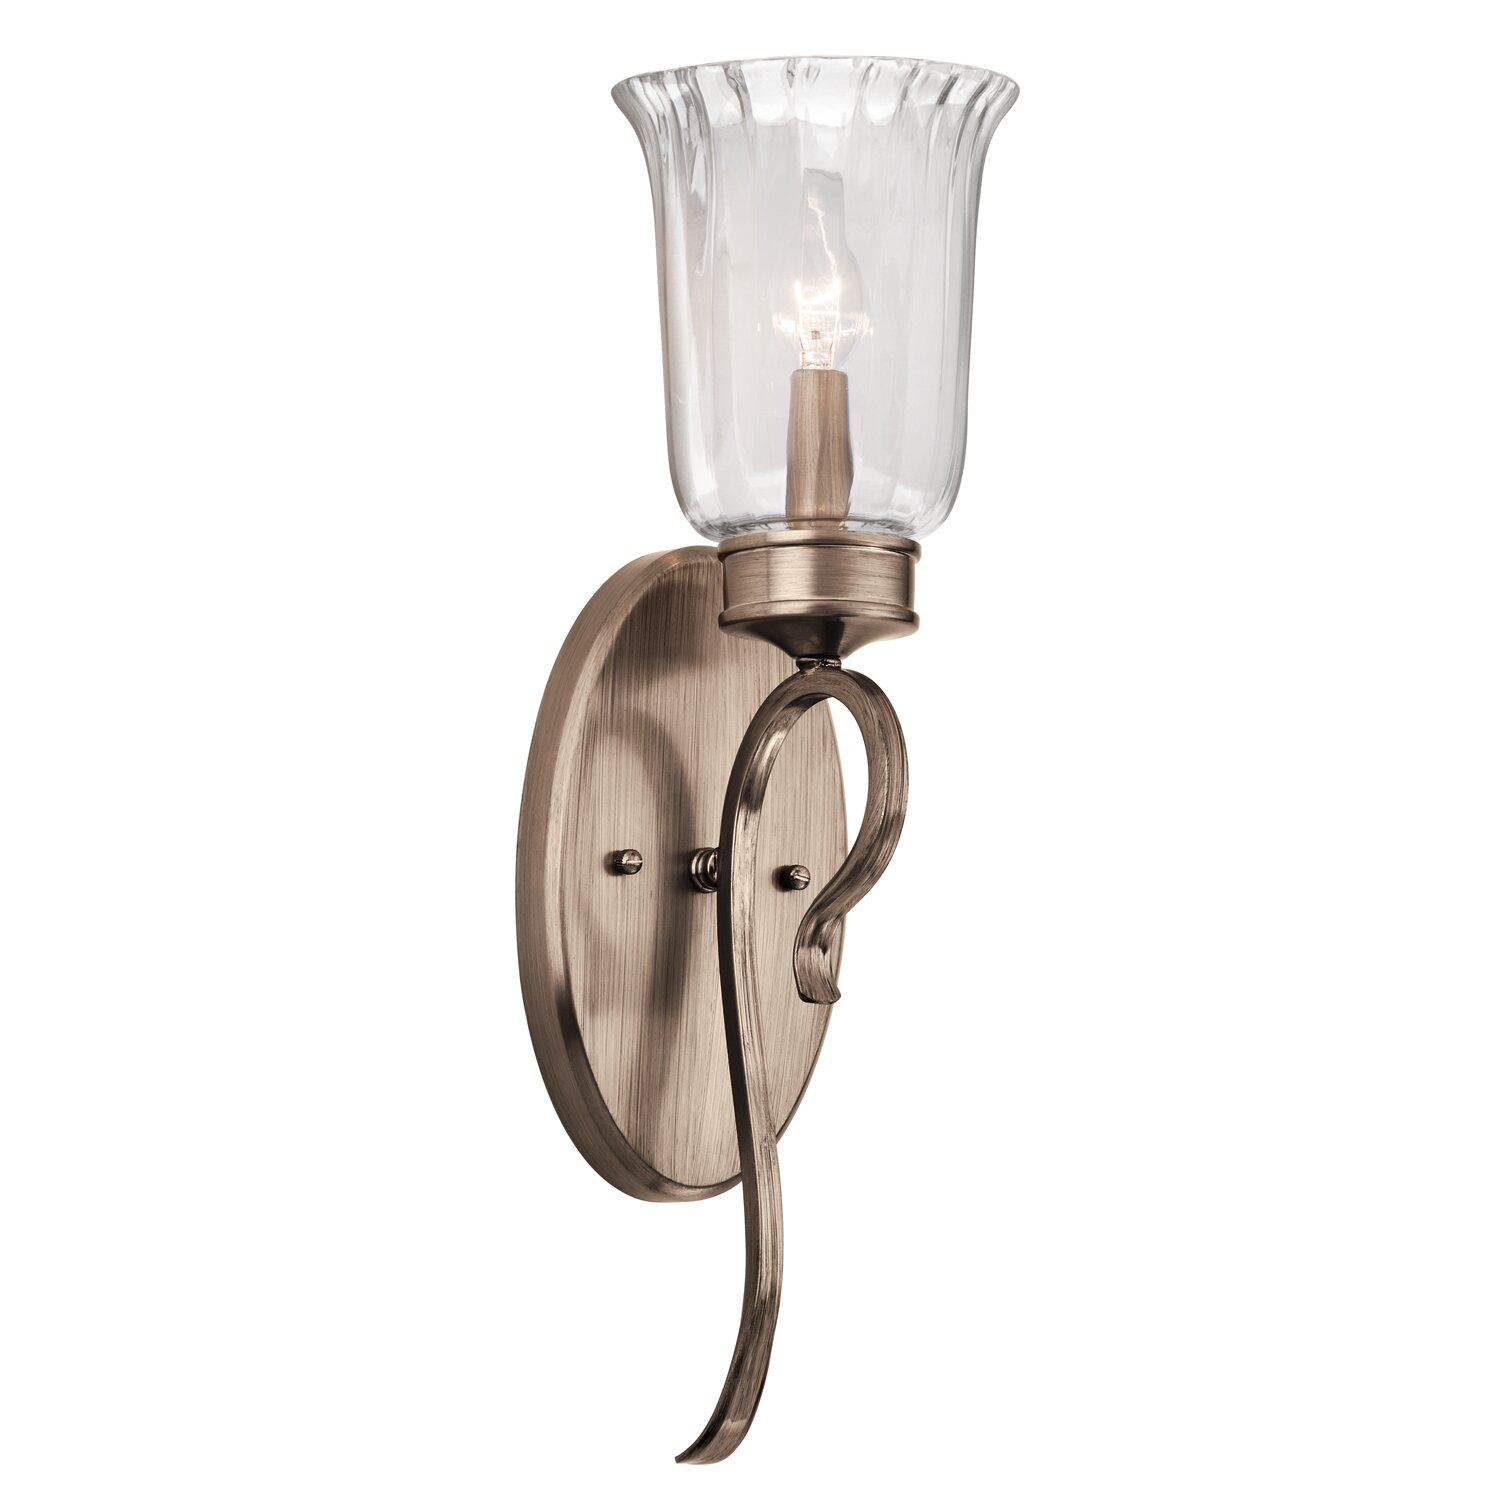 Malina 1 Light Wall Sconce Joss & Main